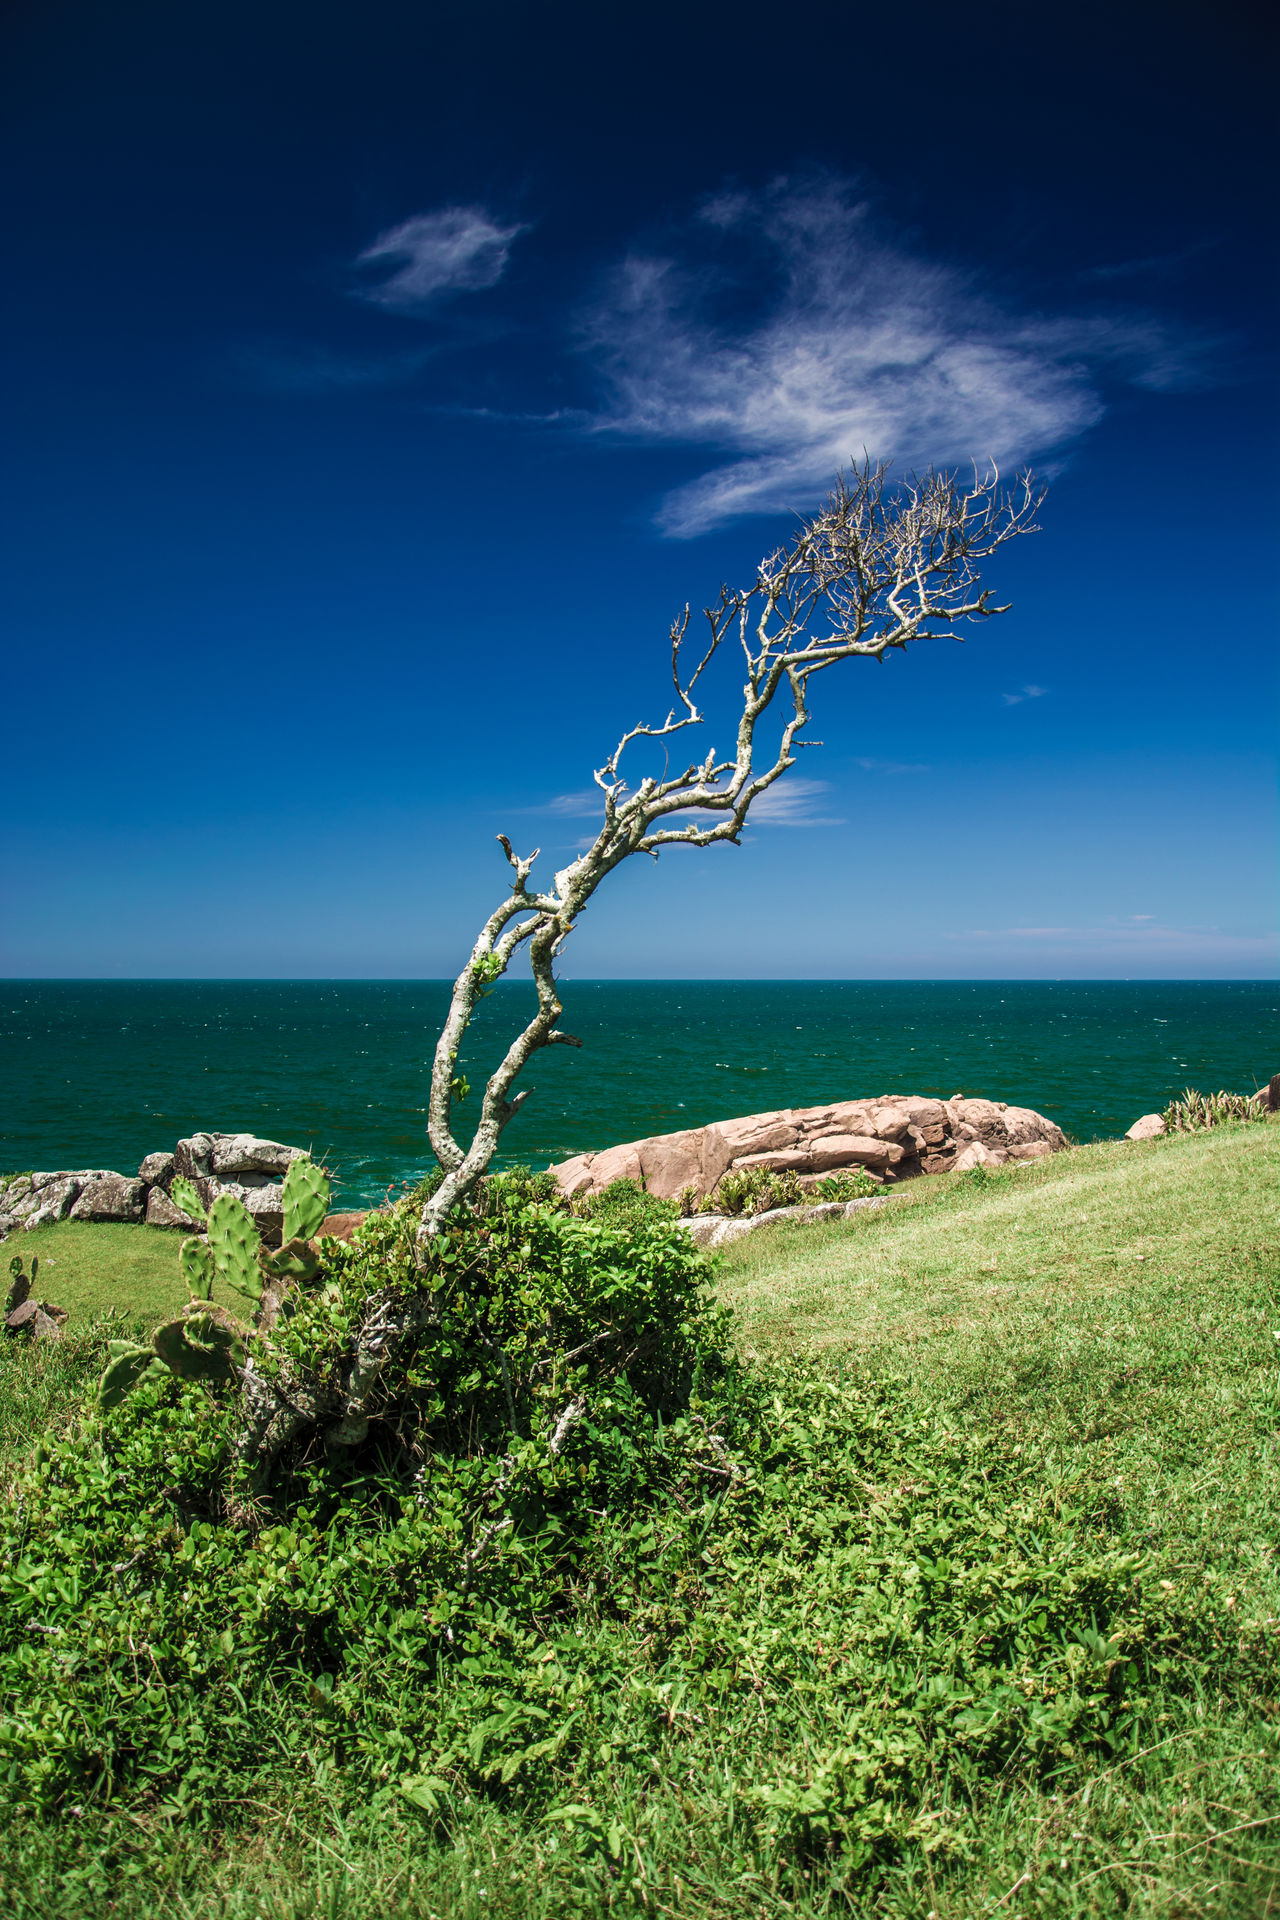 Beach Beauty In Nature Blue Day Grass Growth Horizon Over Water Landscape Nature No People Outdoors Plant Rock - Object Scenics Sea Sky Tranquil Scene Tranquility Tree Water